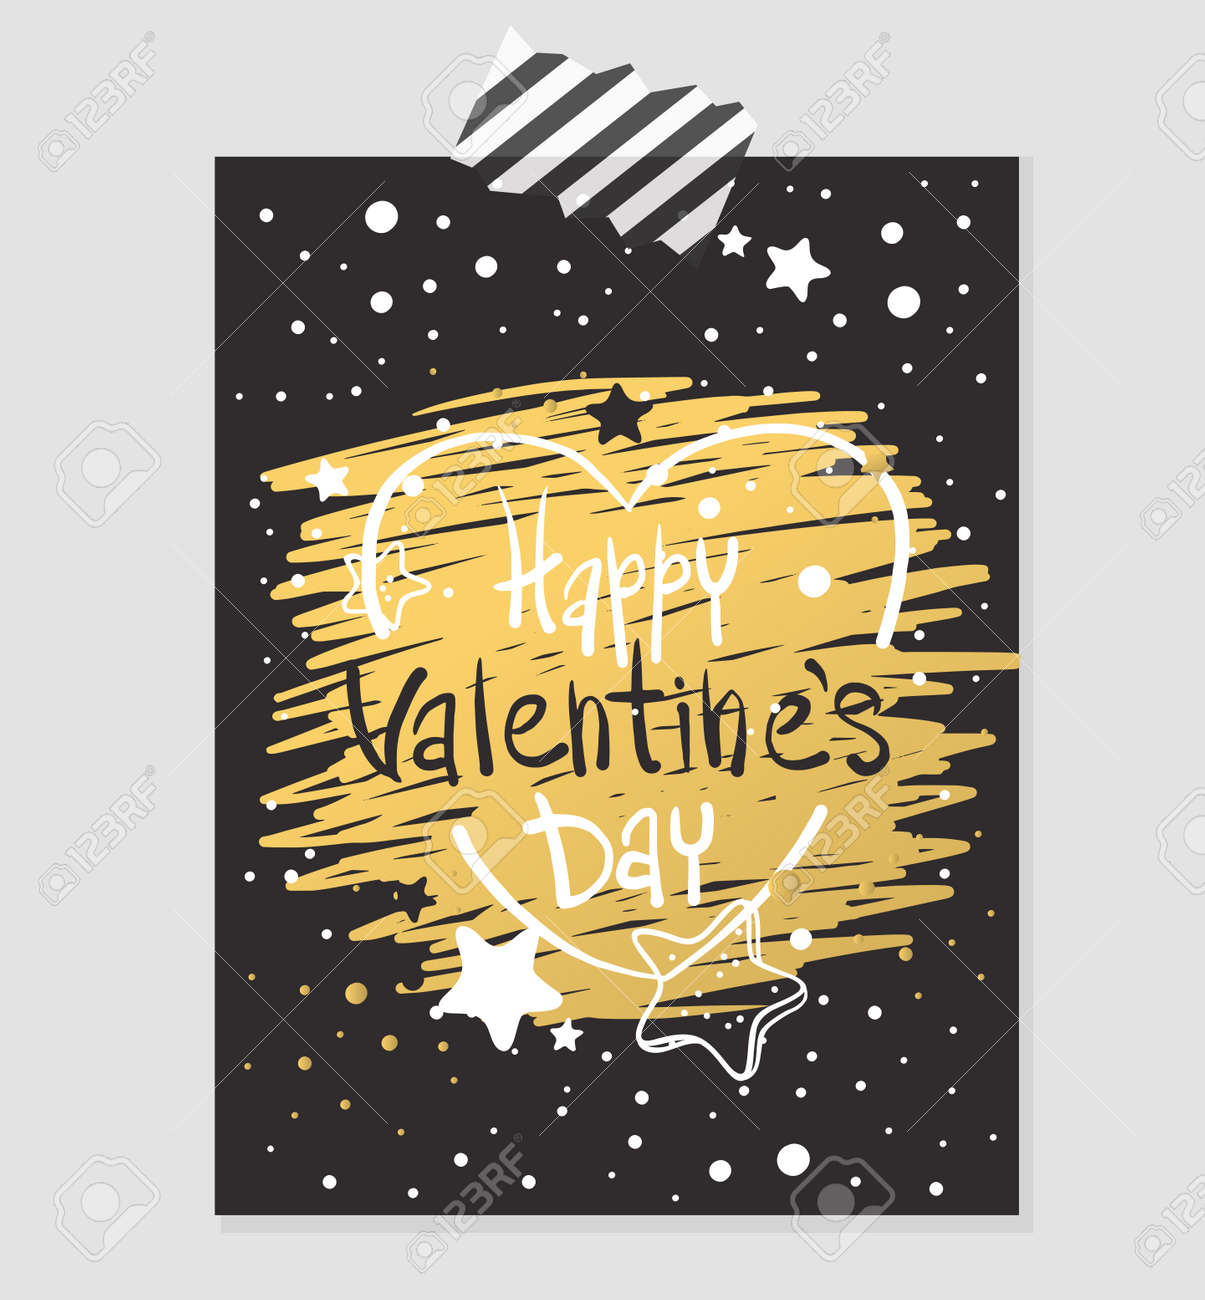 Happy Valentines Day Gold And Black Greeting Card Vector